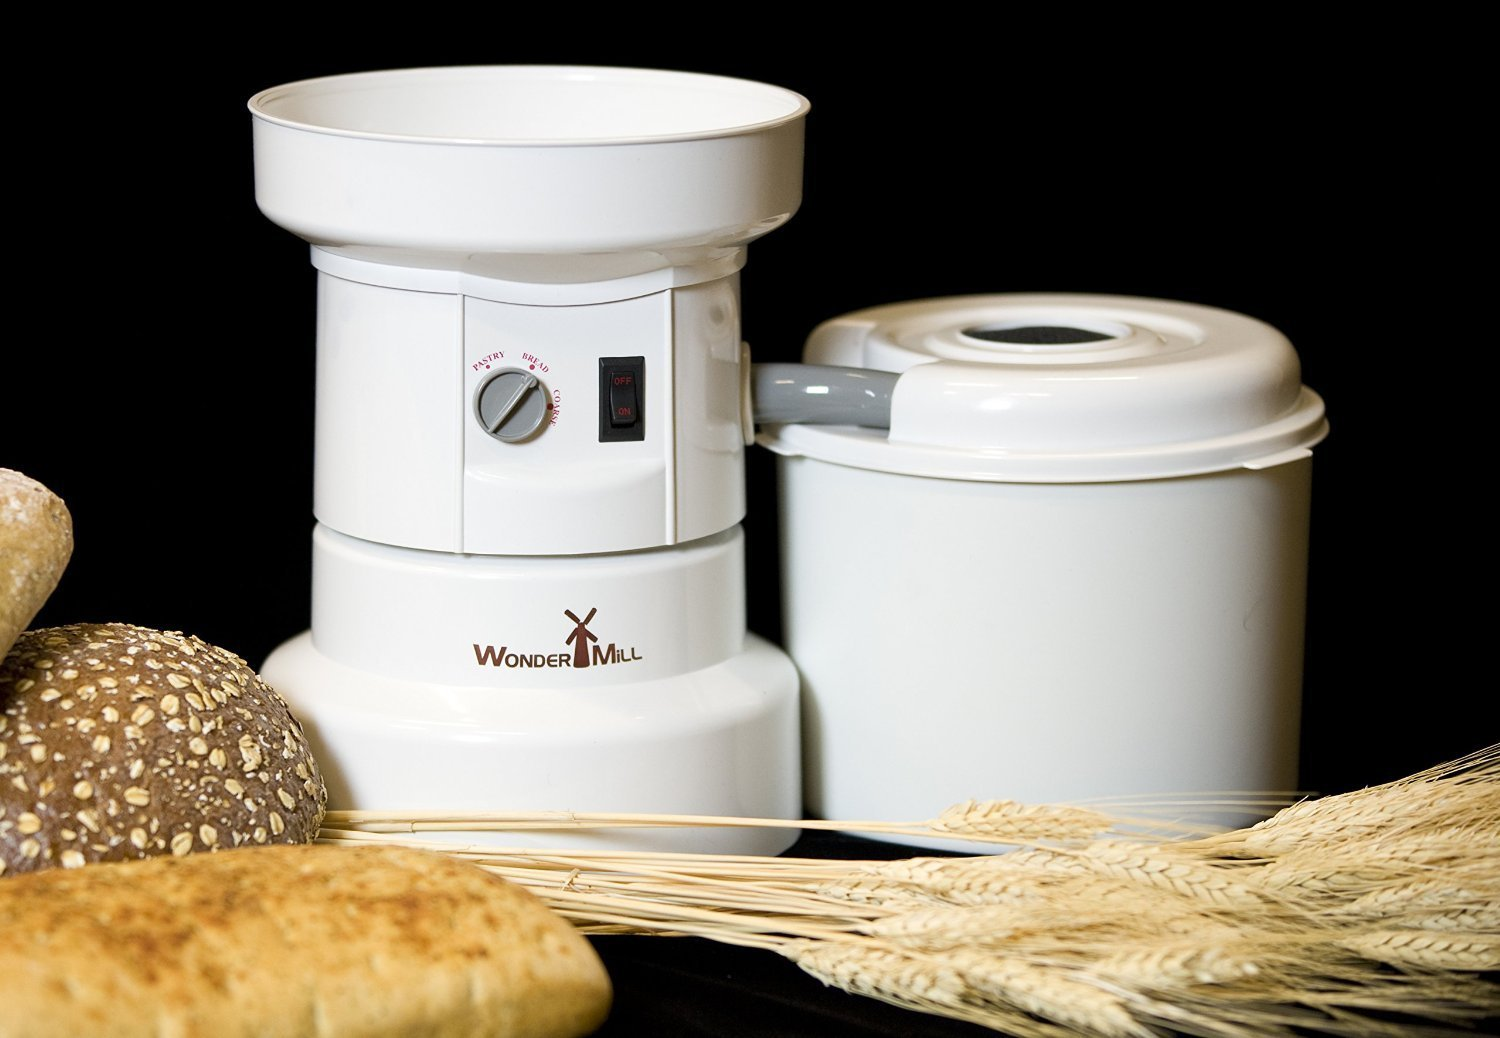 WonderMill Electric Grain Grinder - Grain Mill (110 V) by Wondermill (Image #2)